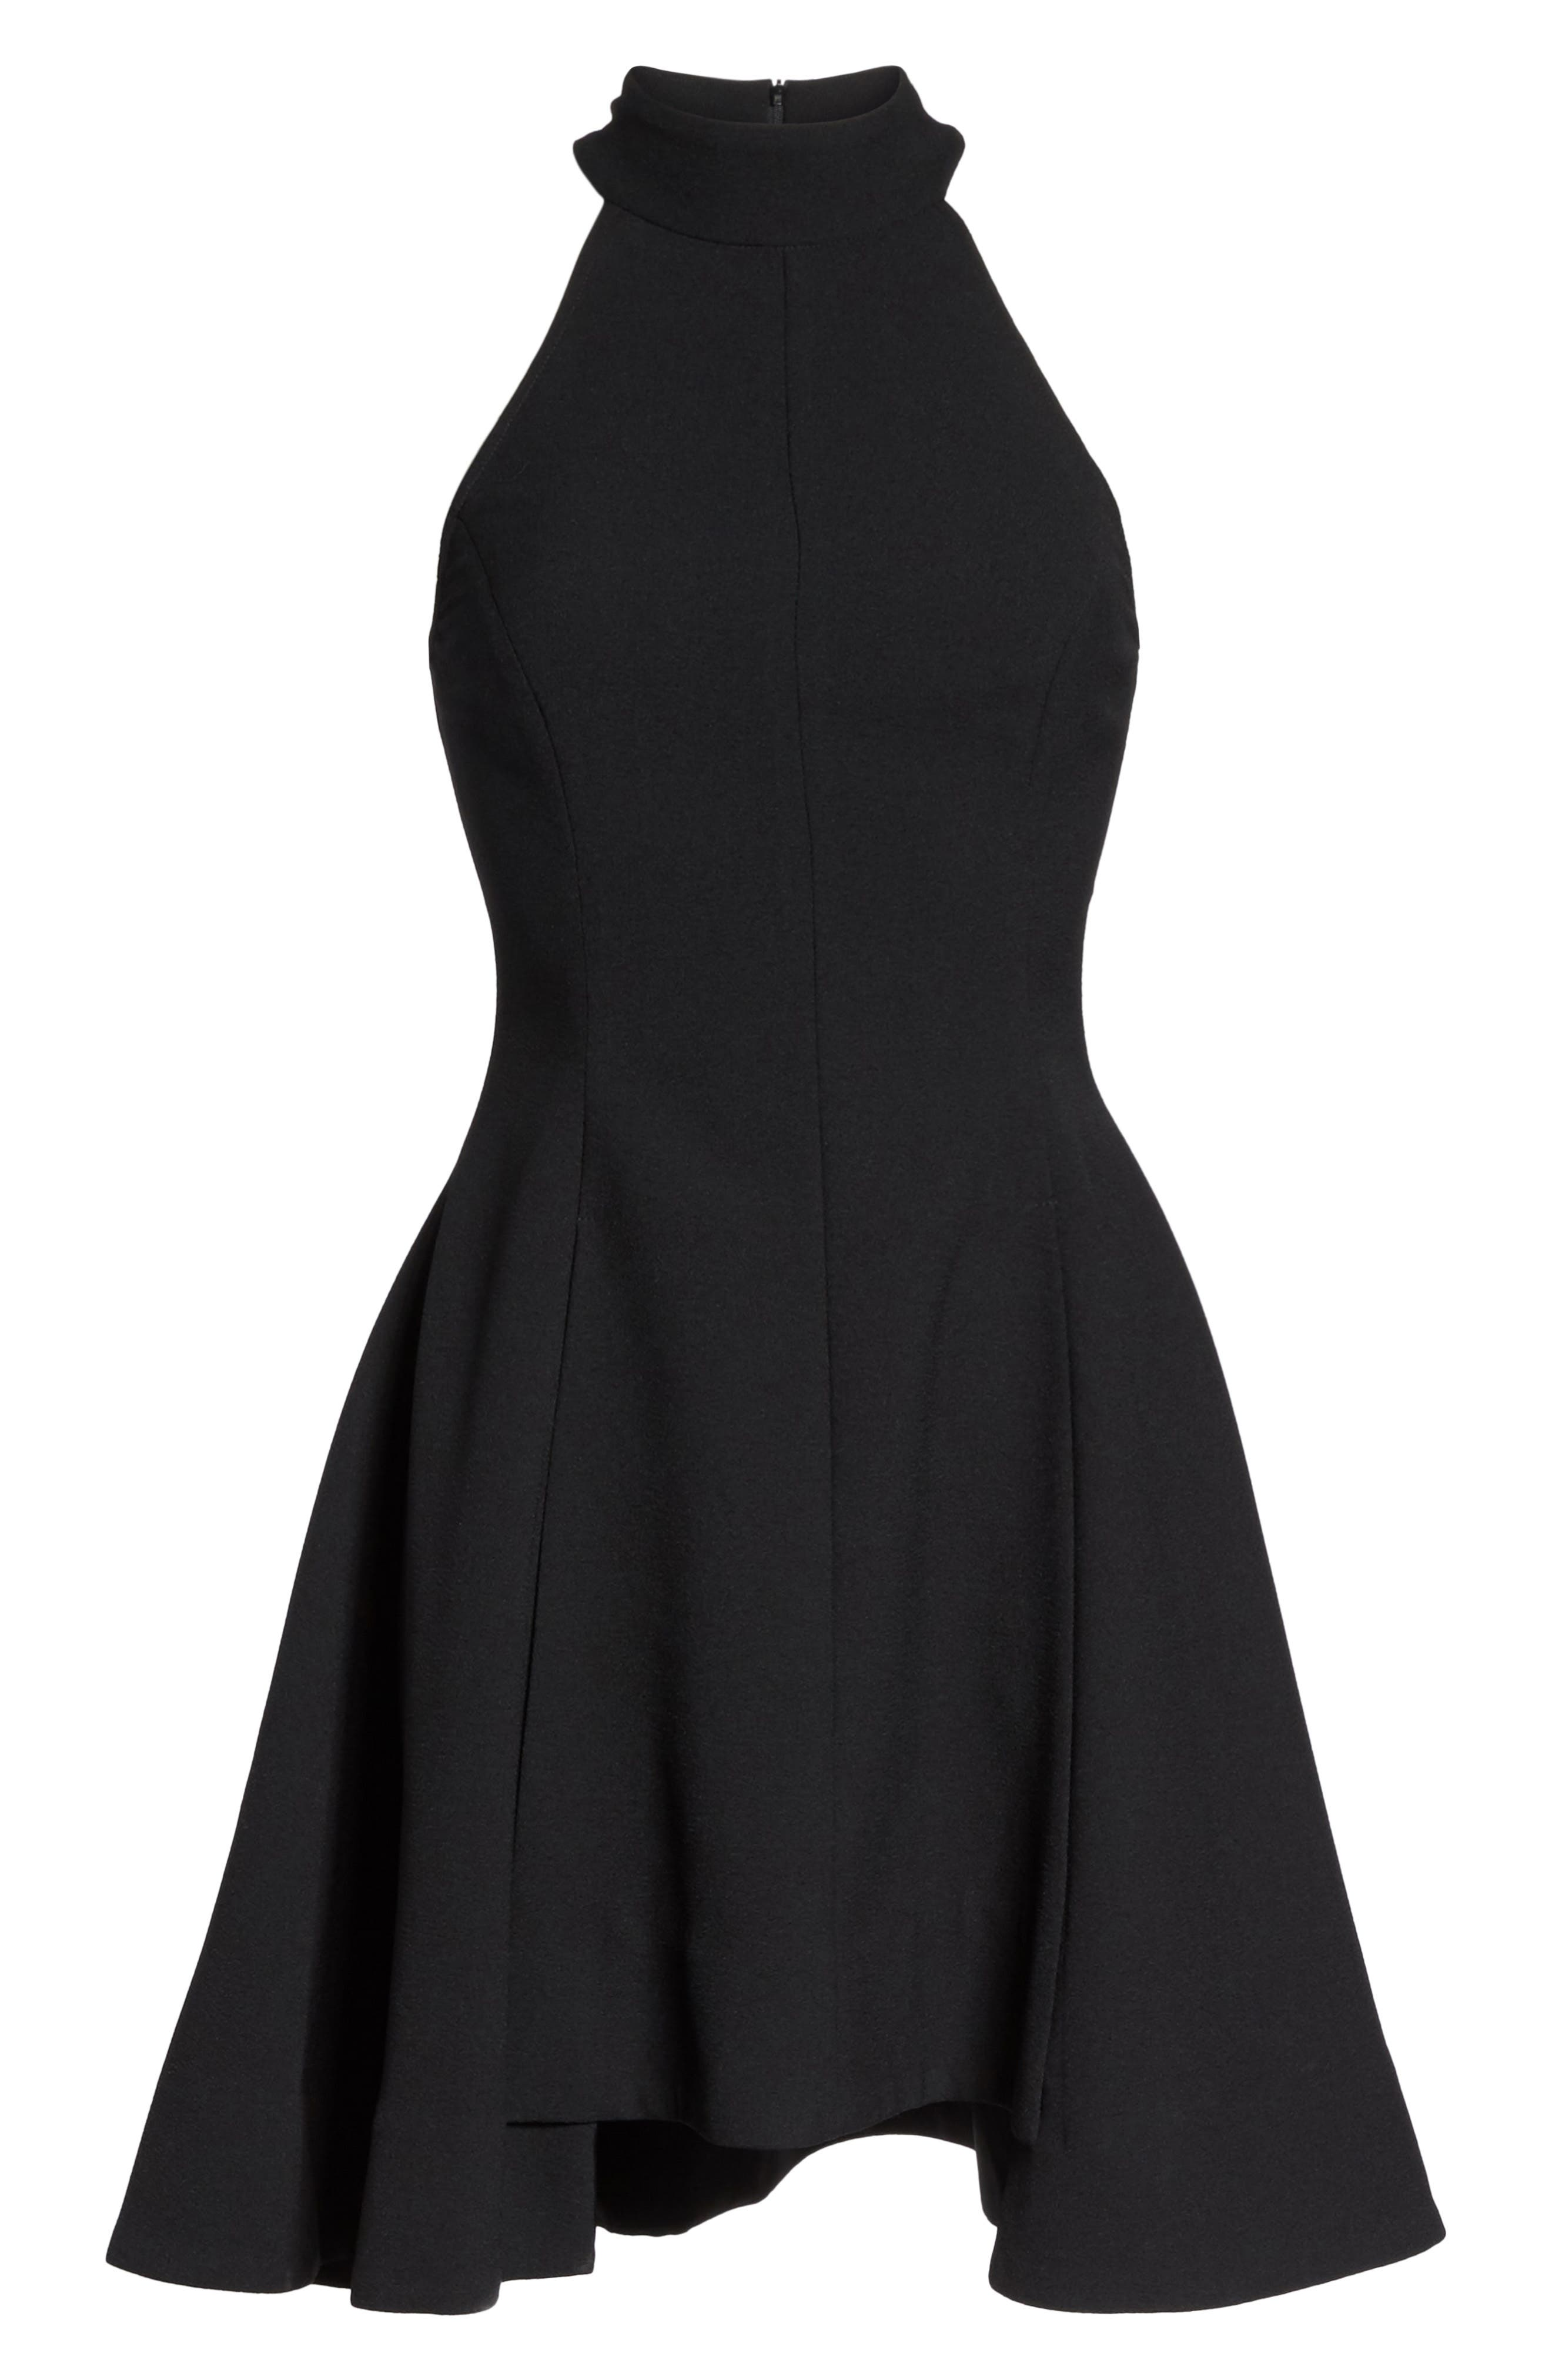 Fusion Halter Style Fit & Flare Dress,                             Alternate thumbnail 6, color,                             001